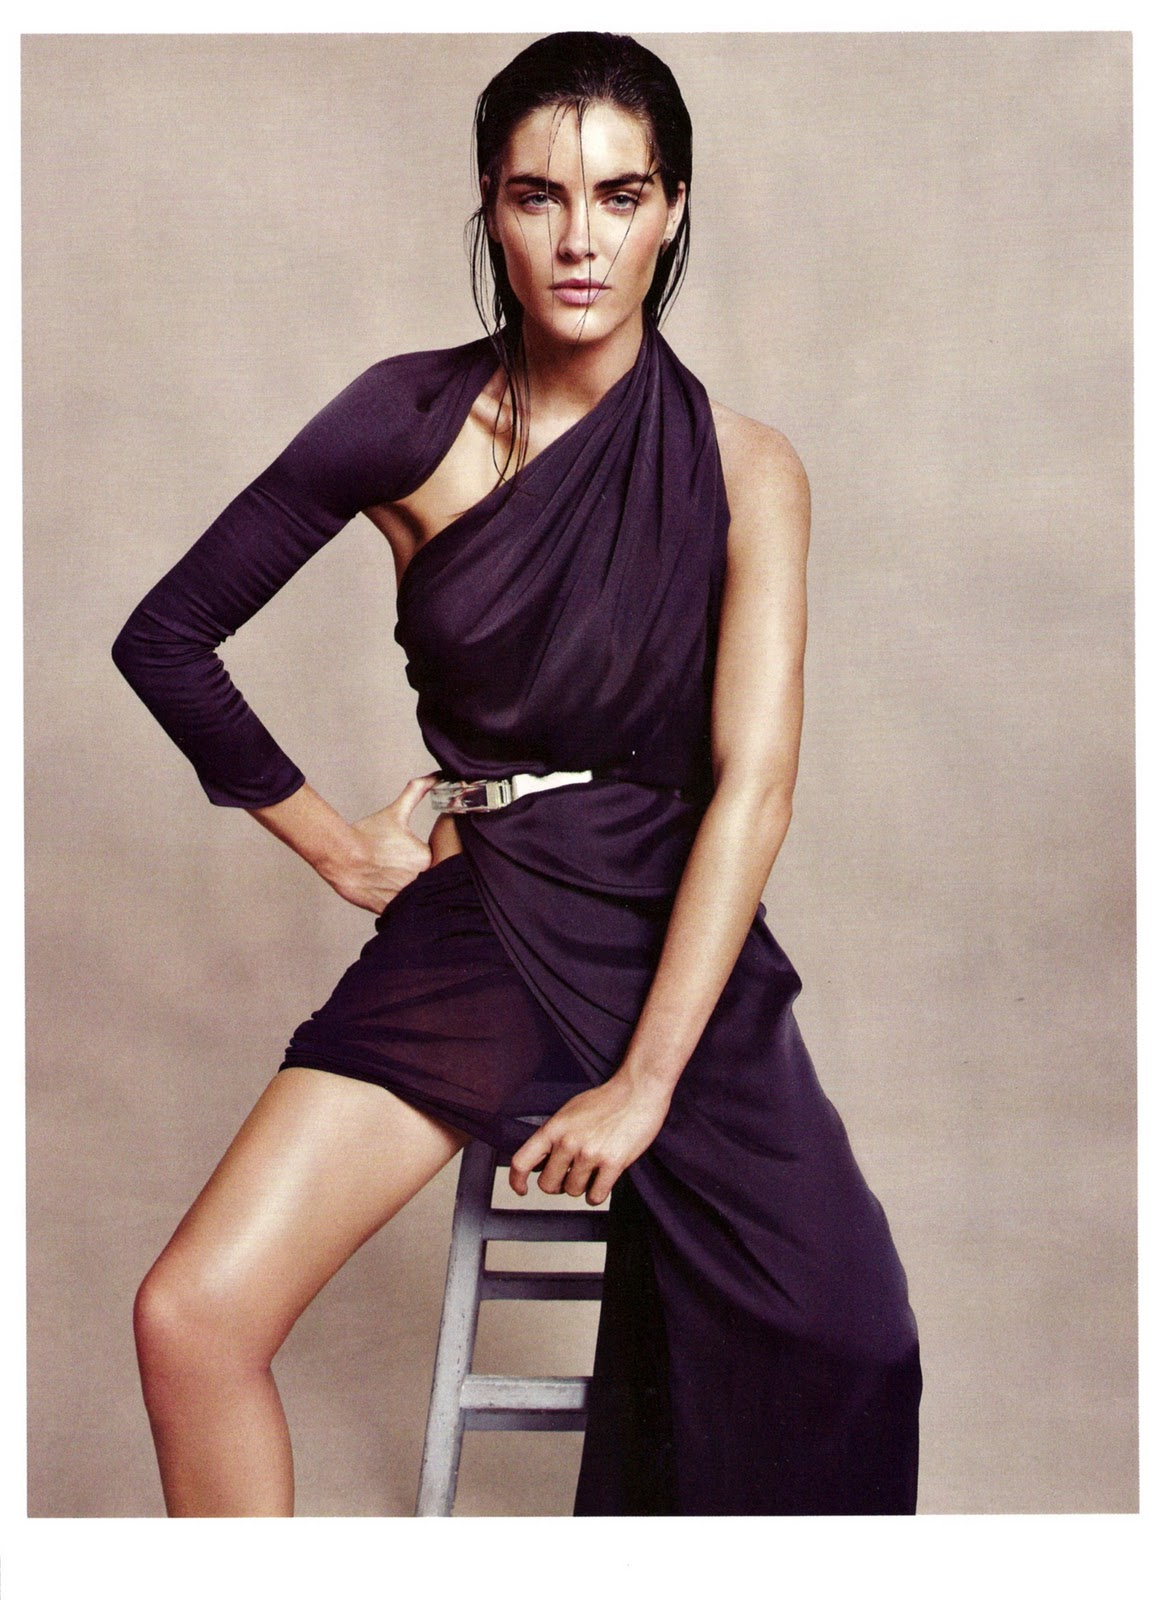 Beauty Hilary Rhoda